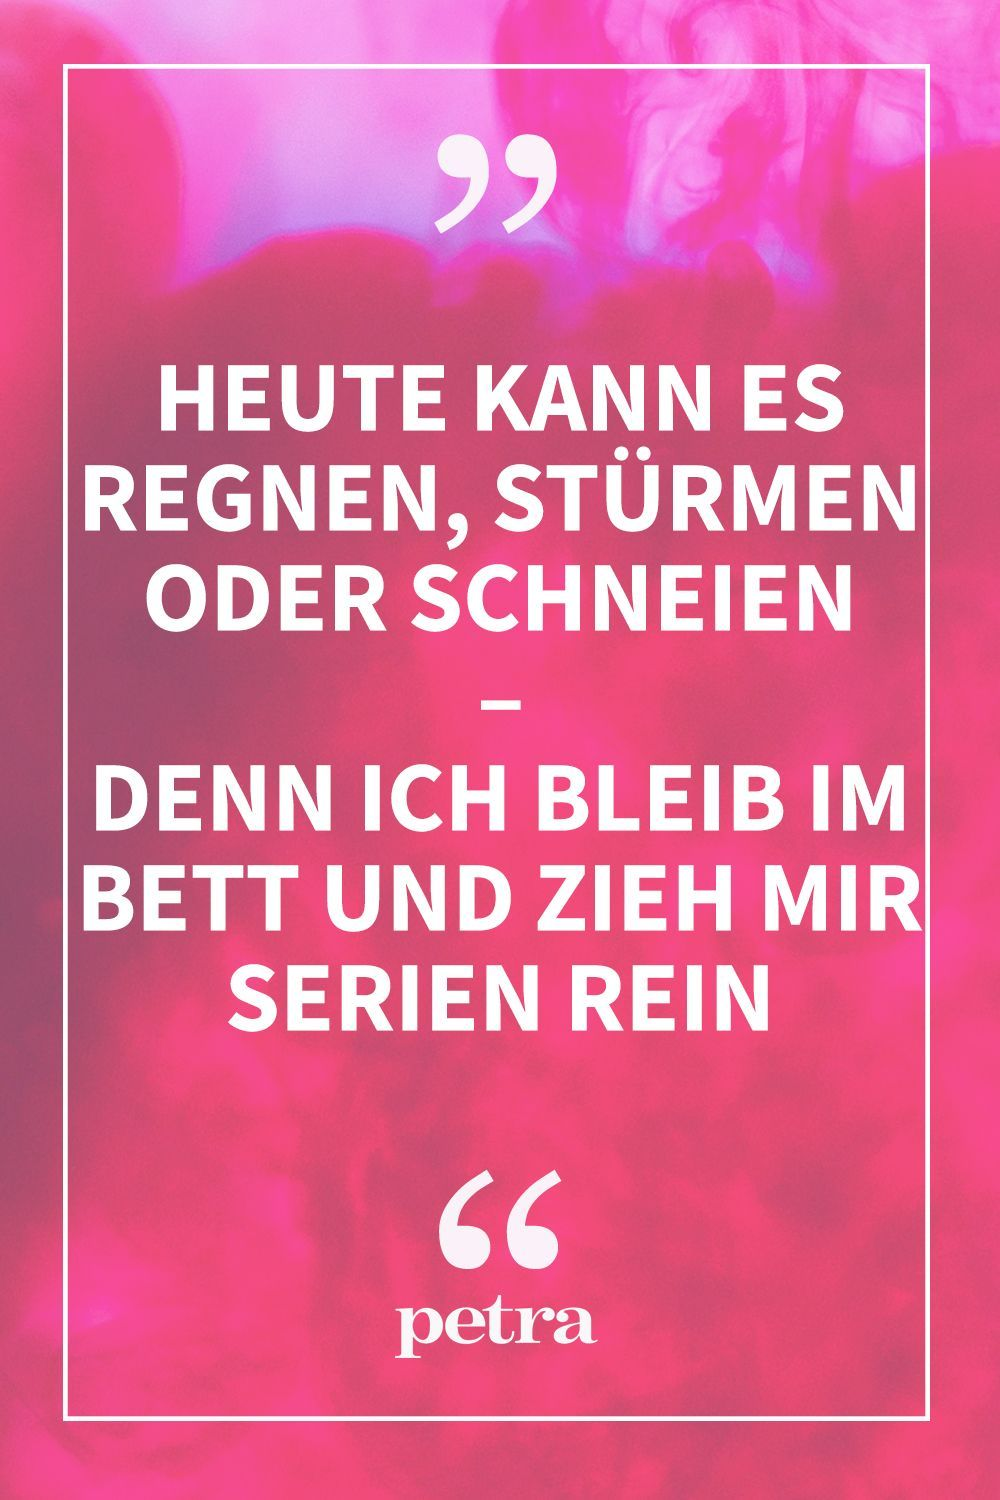 Heute Kann Es Regnen Stürmen Oder Schneien Quote Of The Day Today It Can Rain Storms Or Snow I Stay In Bed And Watch Series Beardstyles Beardedmen Day Funn In 2020 Quote Of The Day Funny Quotes Quotes